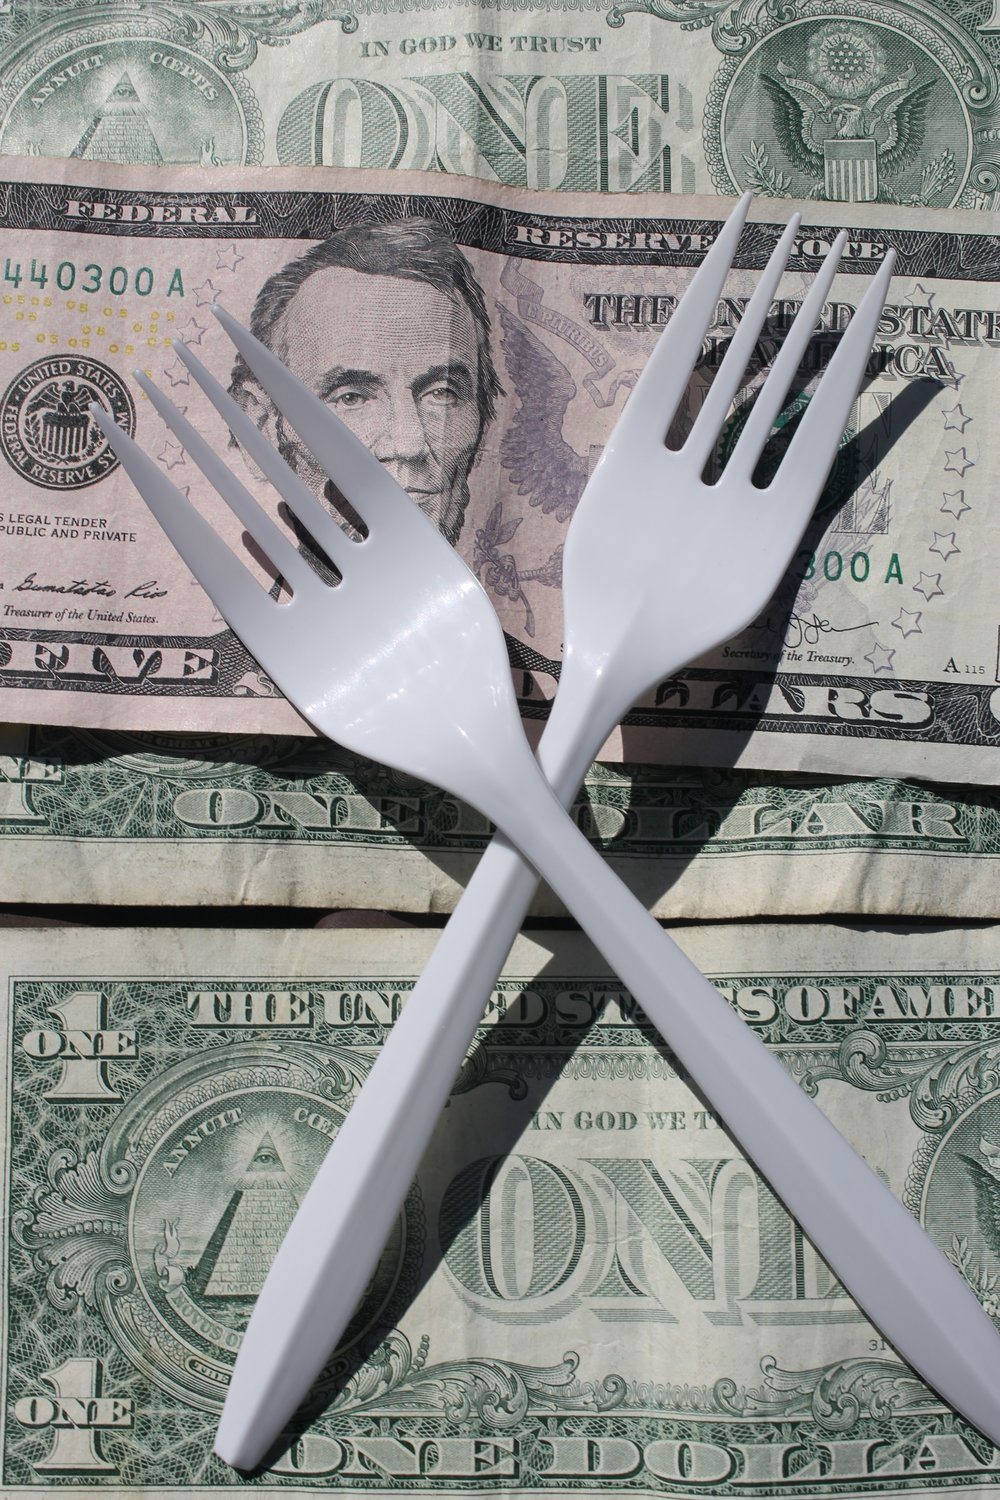 Any amount is too much to pay for utensils that should be free.